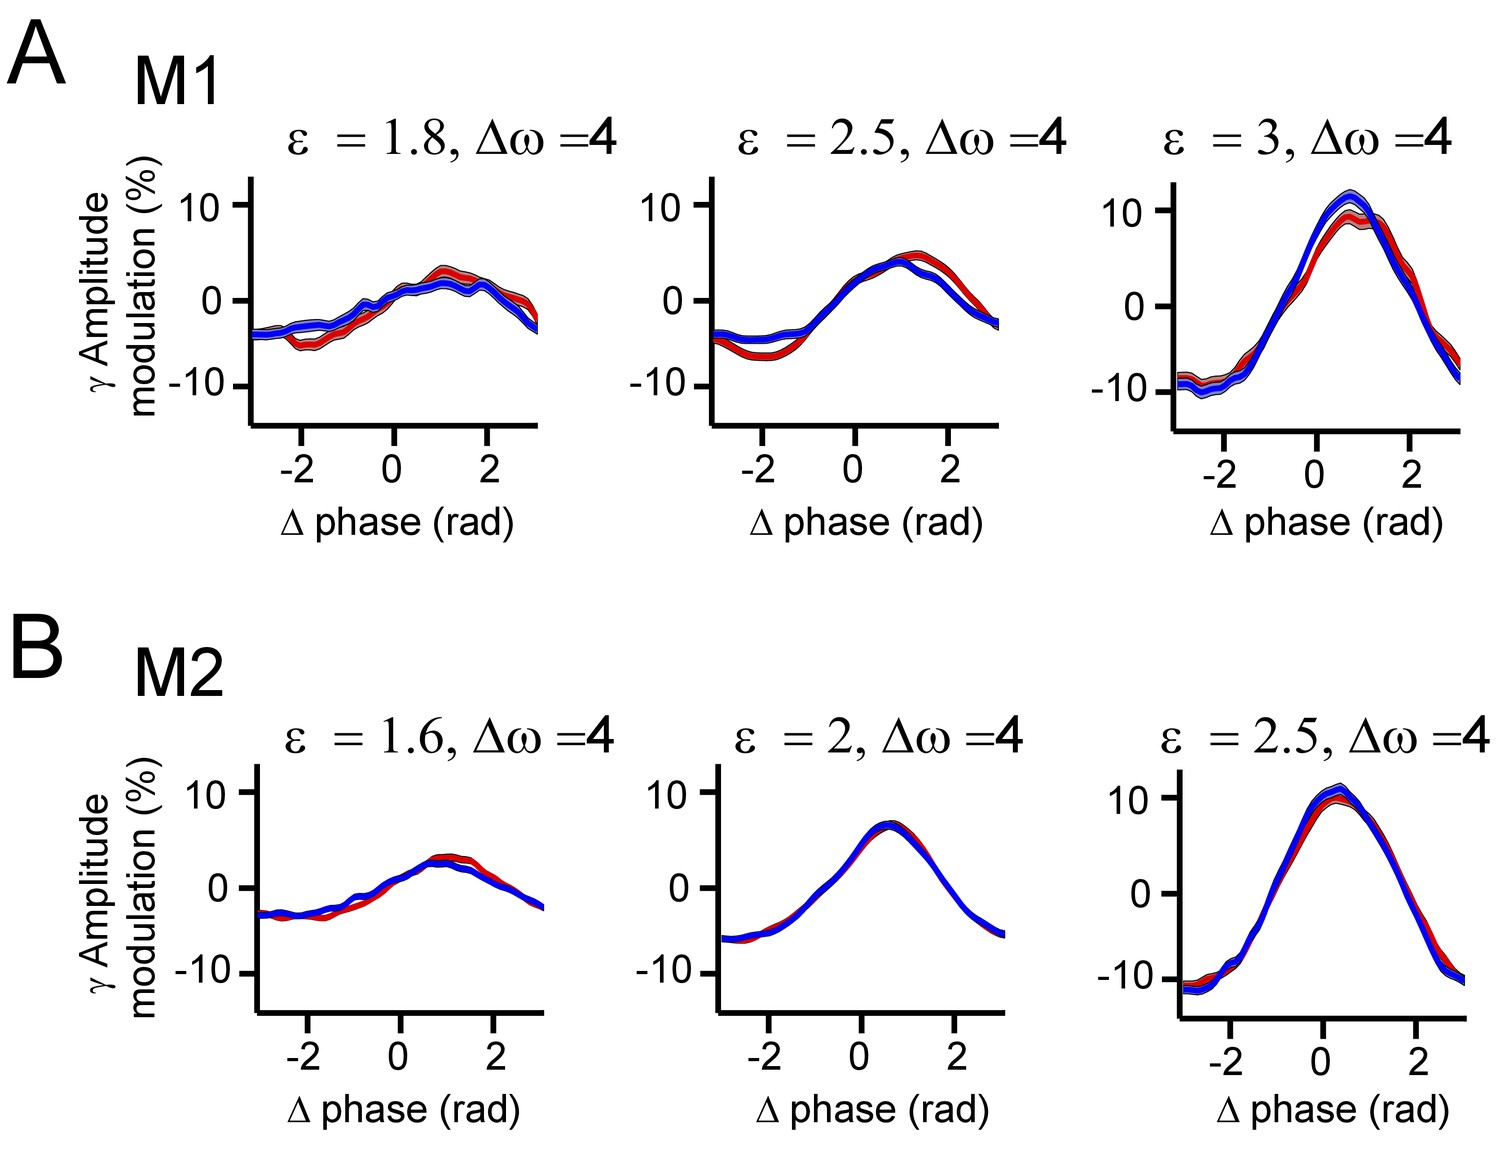 Gamma Split A Quantitative Theory Of Gamma Synchronization In Macaque V1 Elife